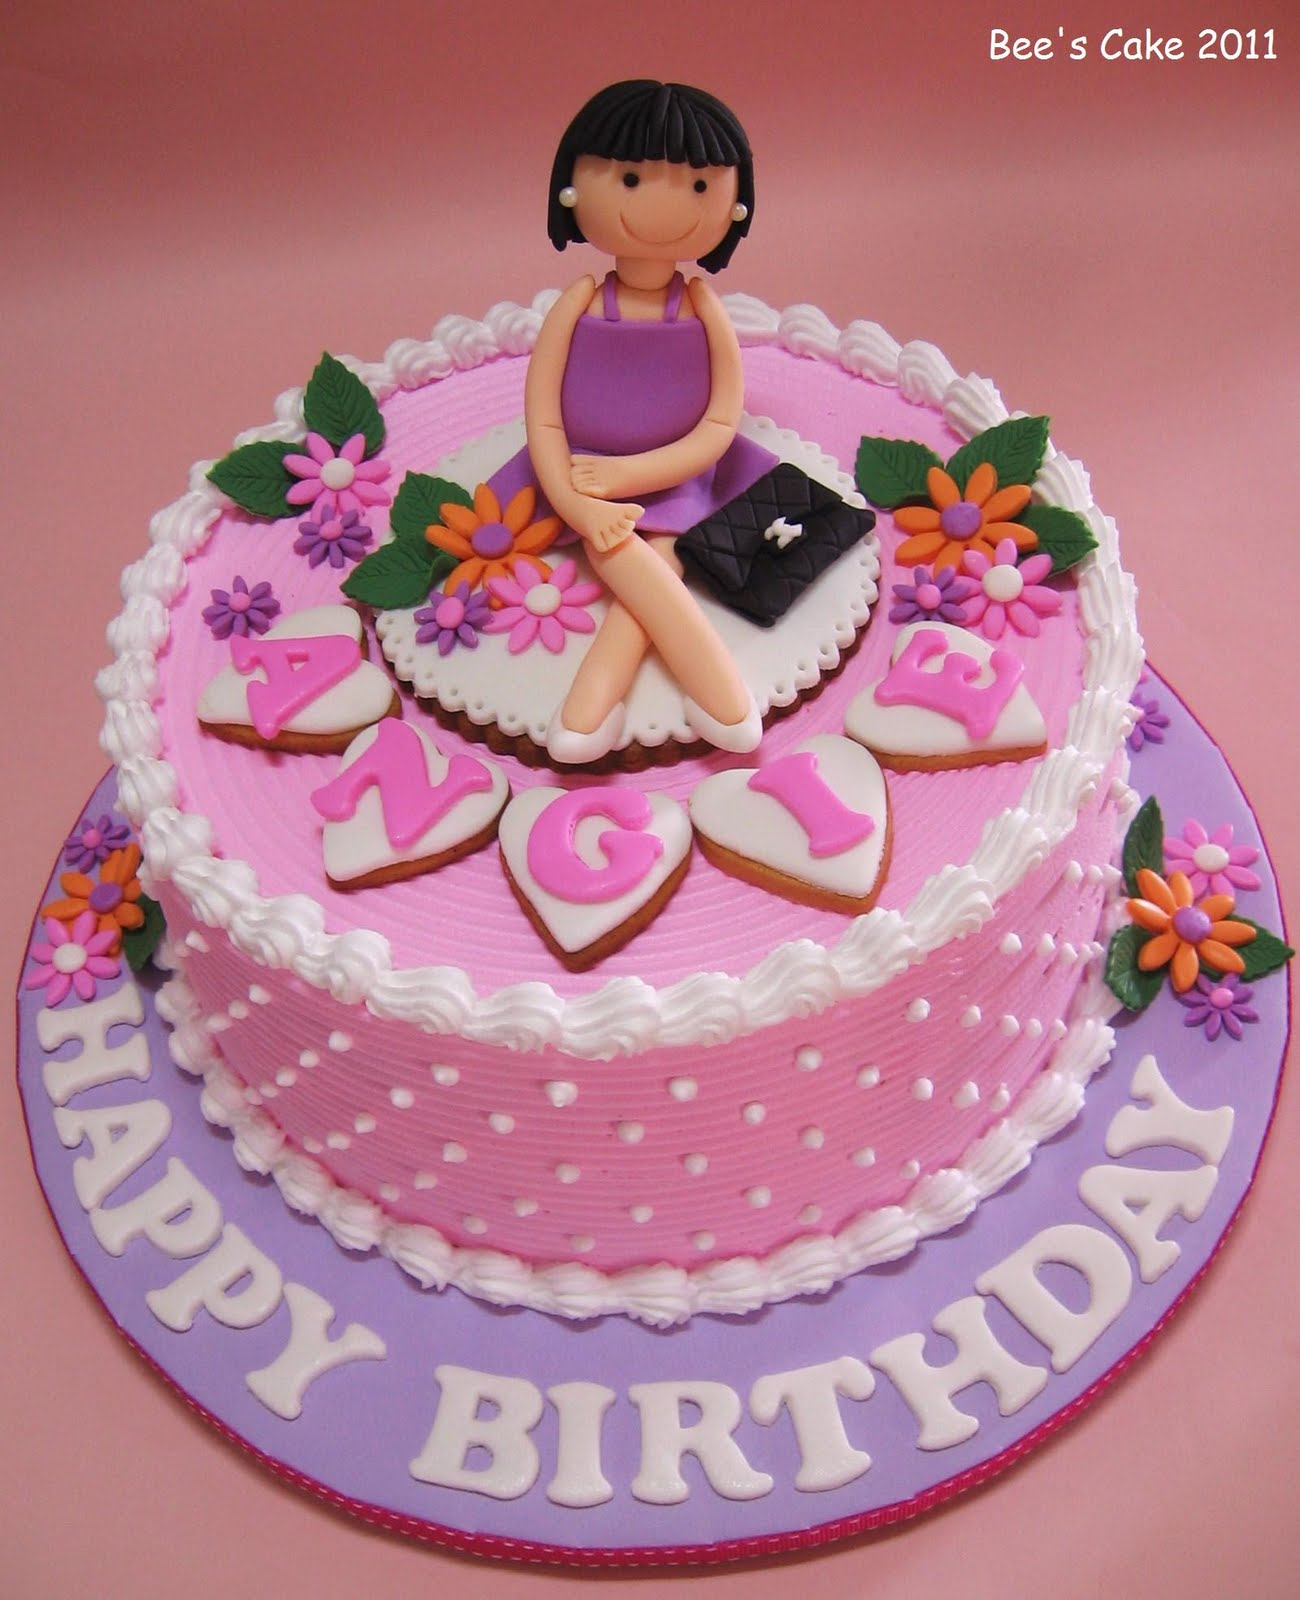 Labels: Birthday cake